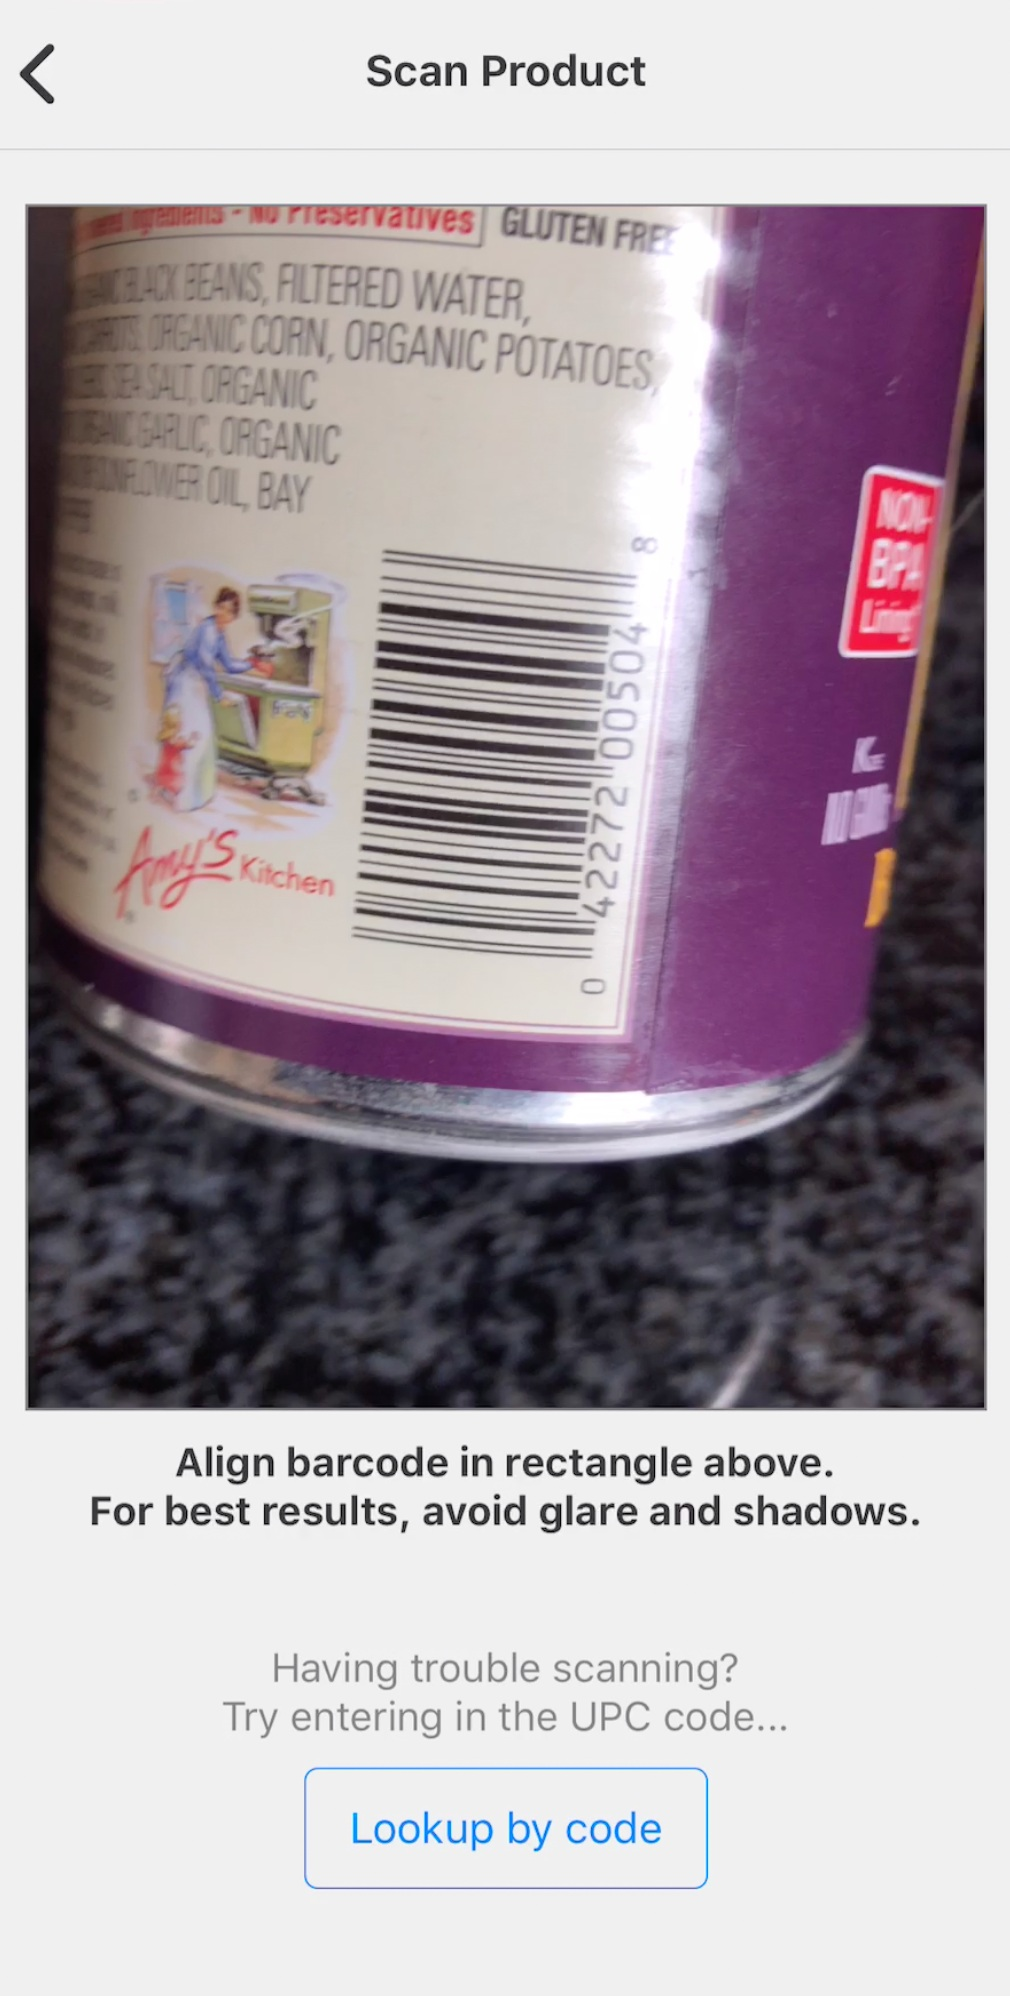 Scan Product Barcodes - Foods are looked up in a comprehensive food database for nutrition and ingredient information